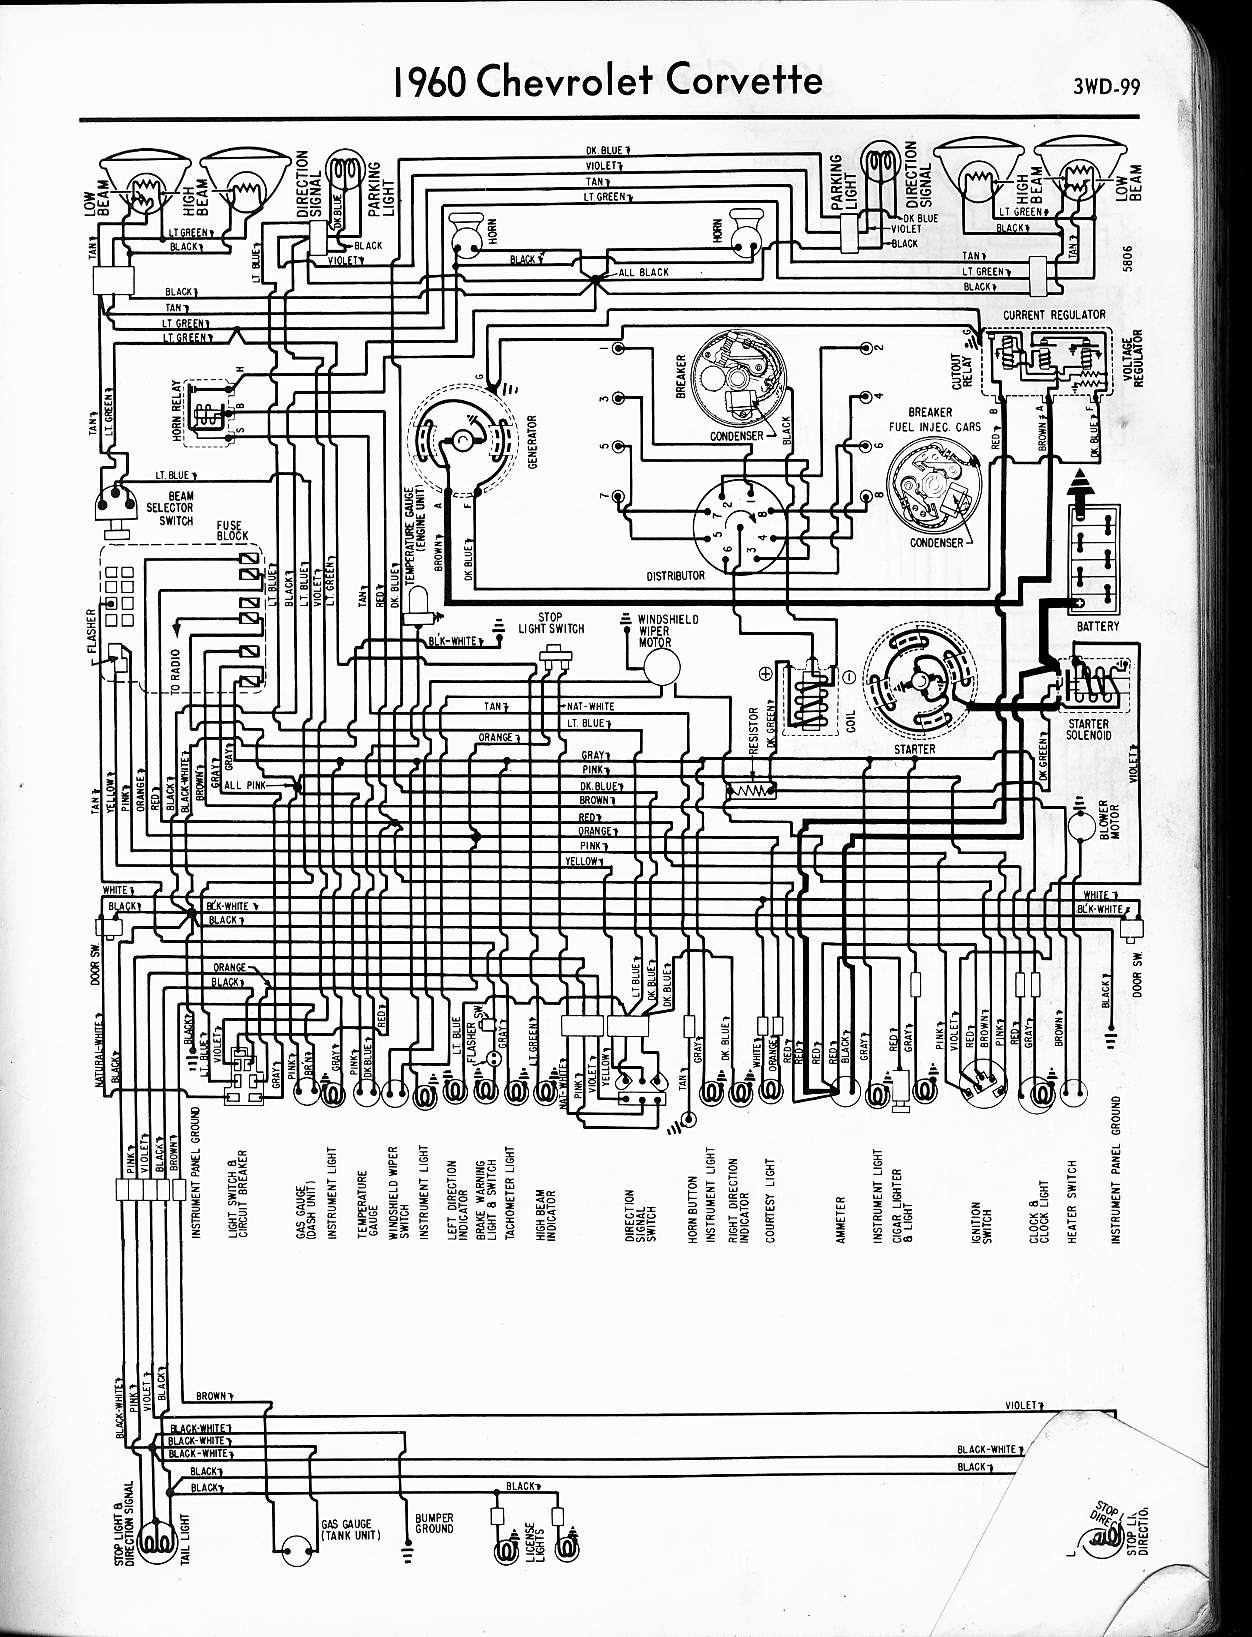 Engine Wiring Diagrams 1960 Worksheet And Diagram 1969 Corvette Exterior Schematics U2022 Rh Parntesis Co Dodge